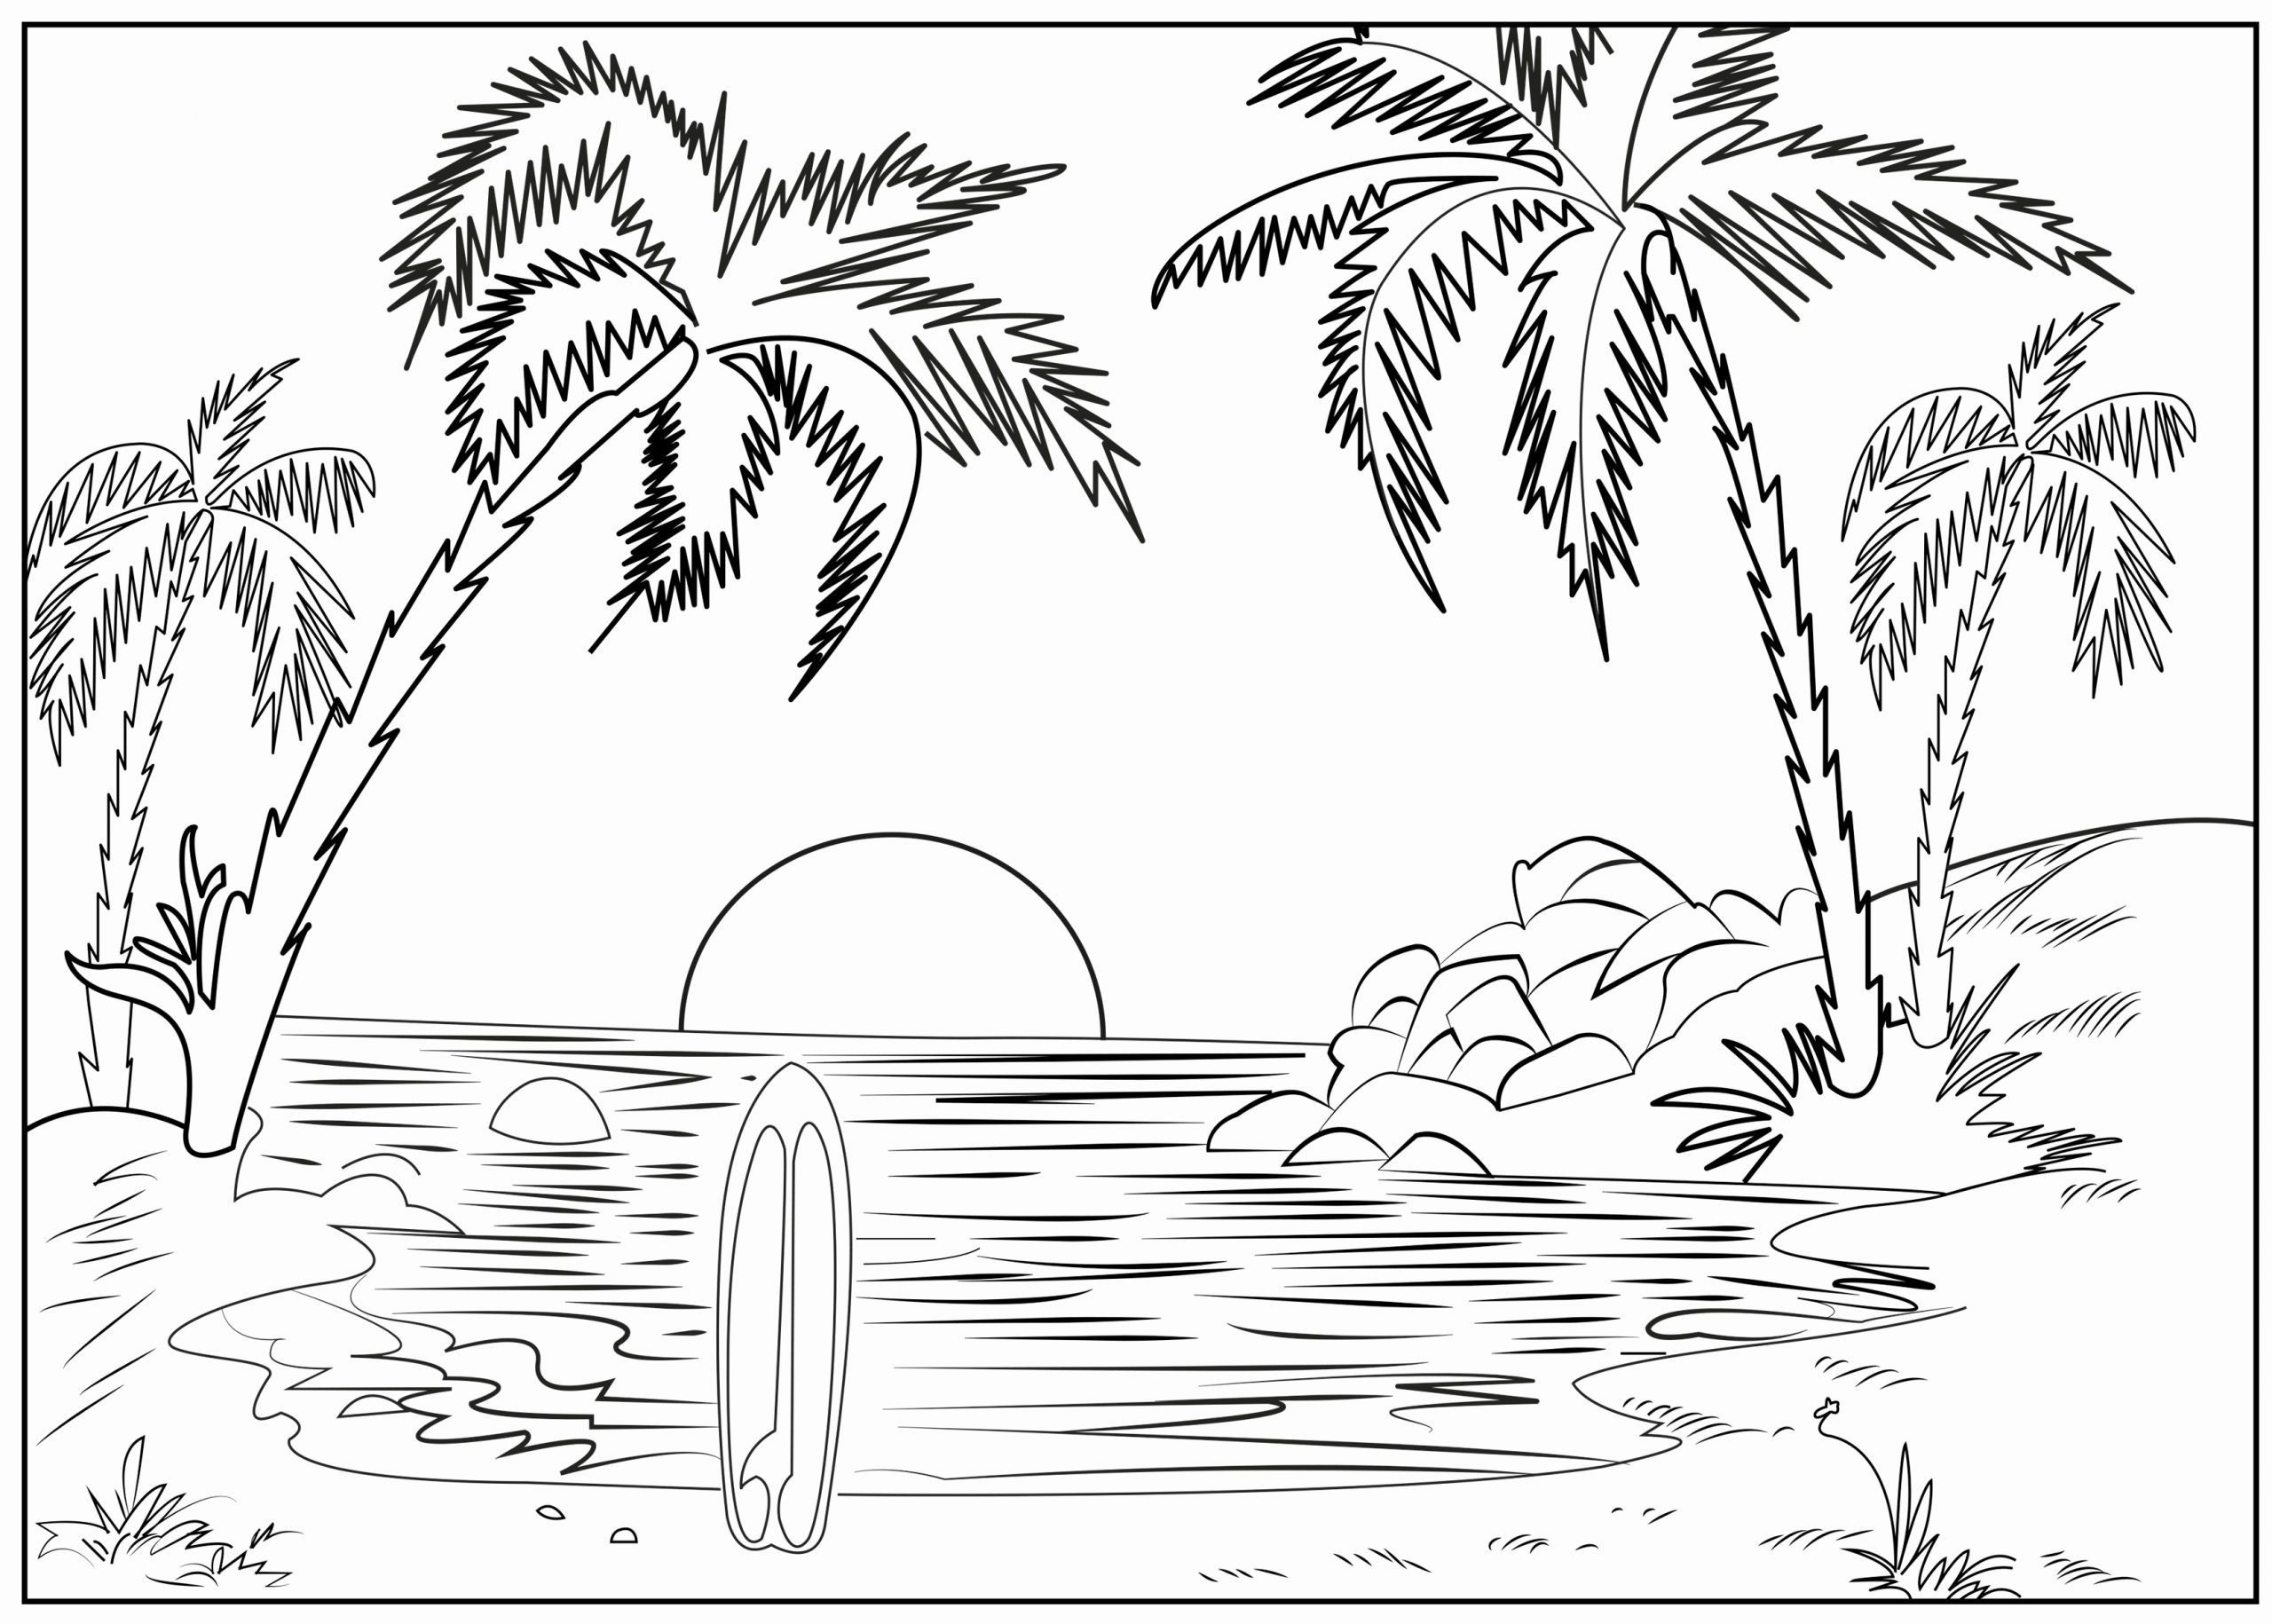 Coloring Pages Nature Scenes Inspirational Nature Scenery Coloring Page In 2020 Coloring Pages Nature Beach Coloring Pages Coloring Pages